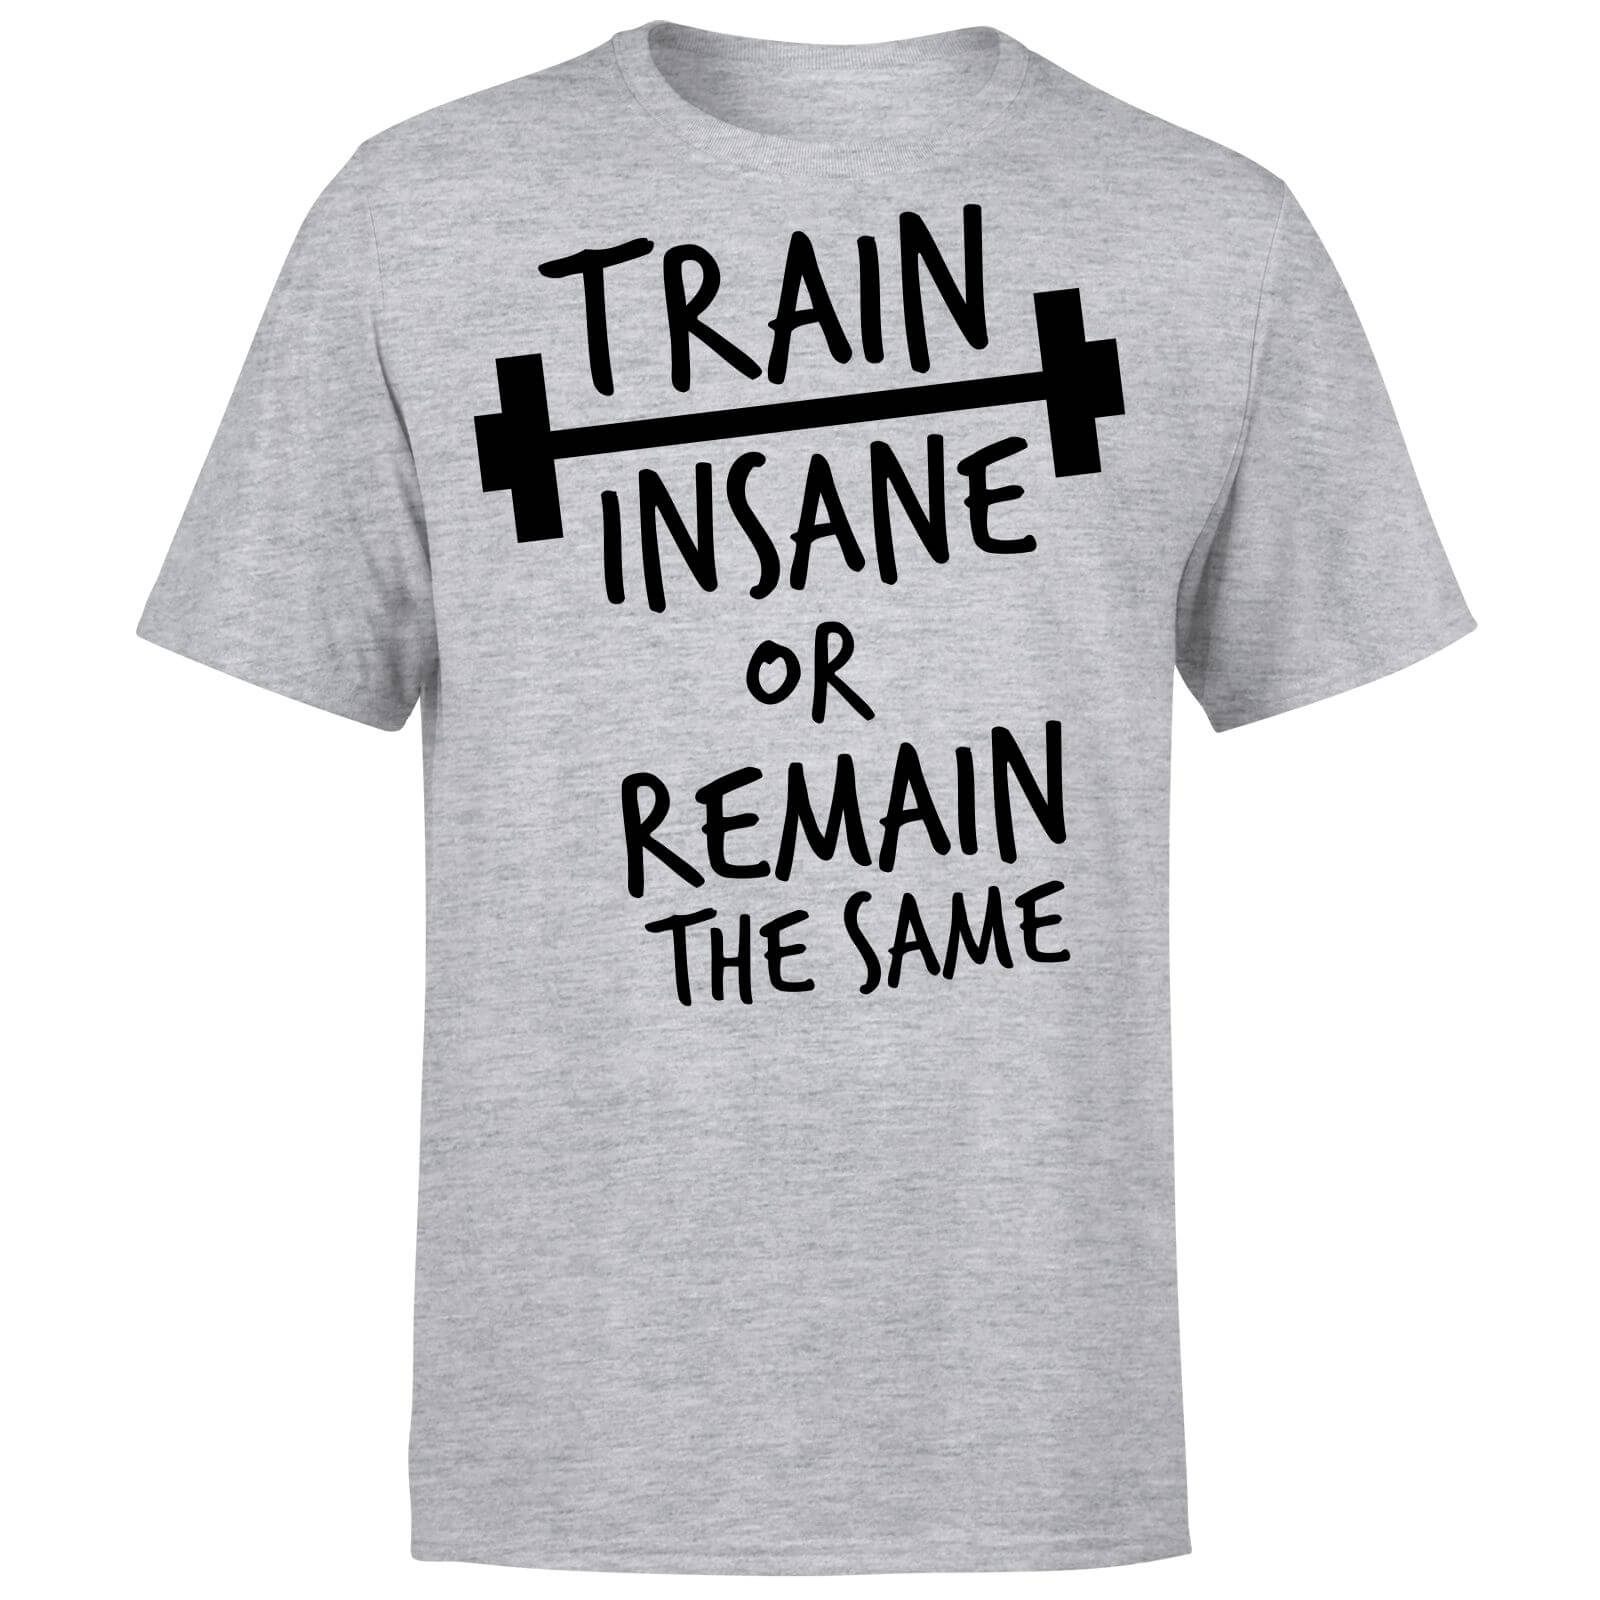 Train Insane or Remain the Same T-Shirt - Grey